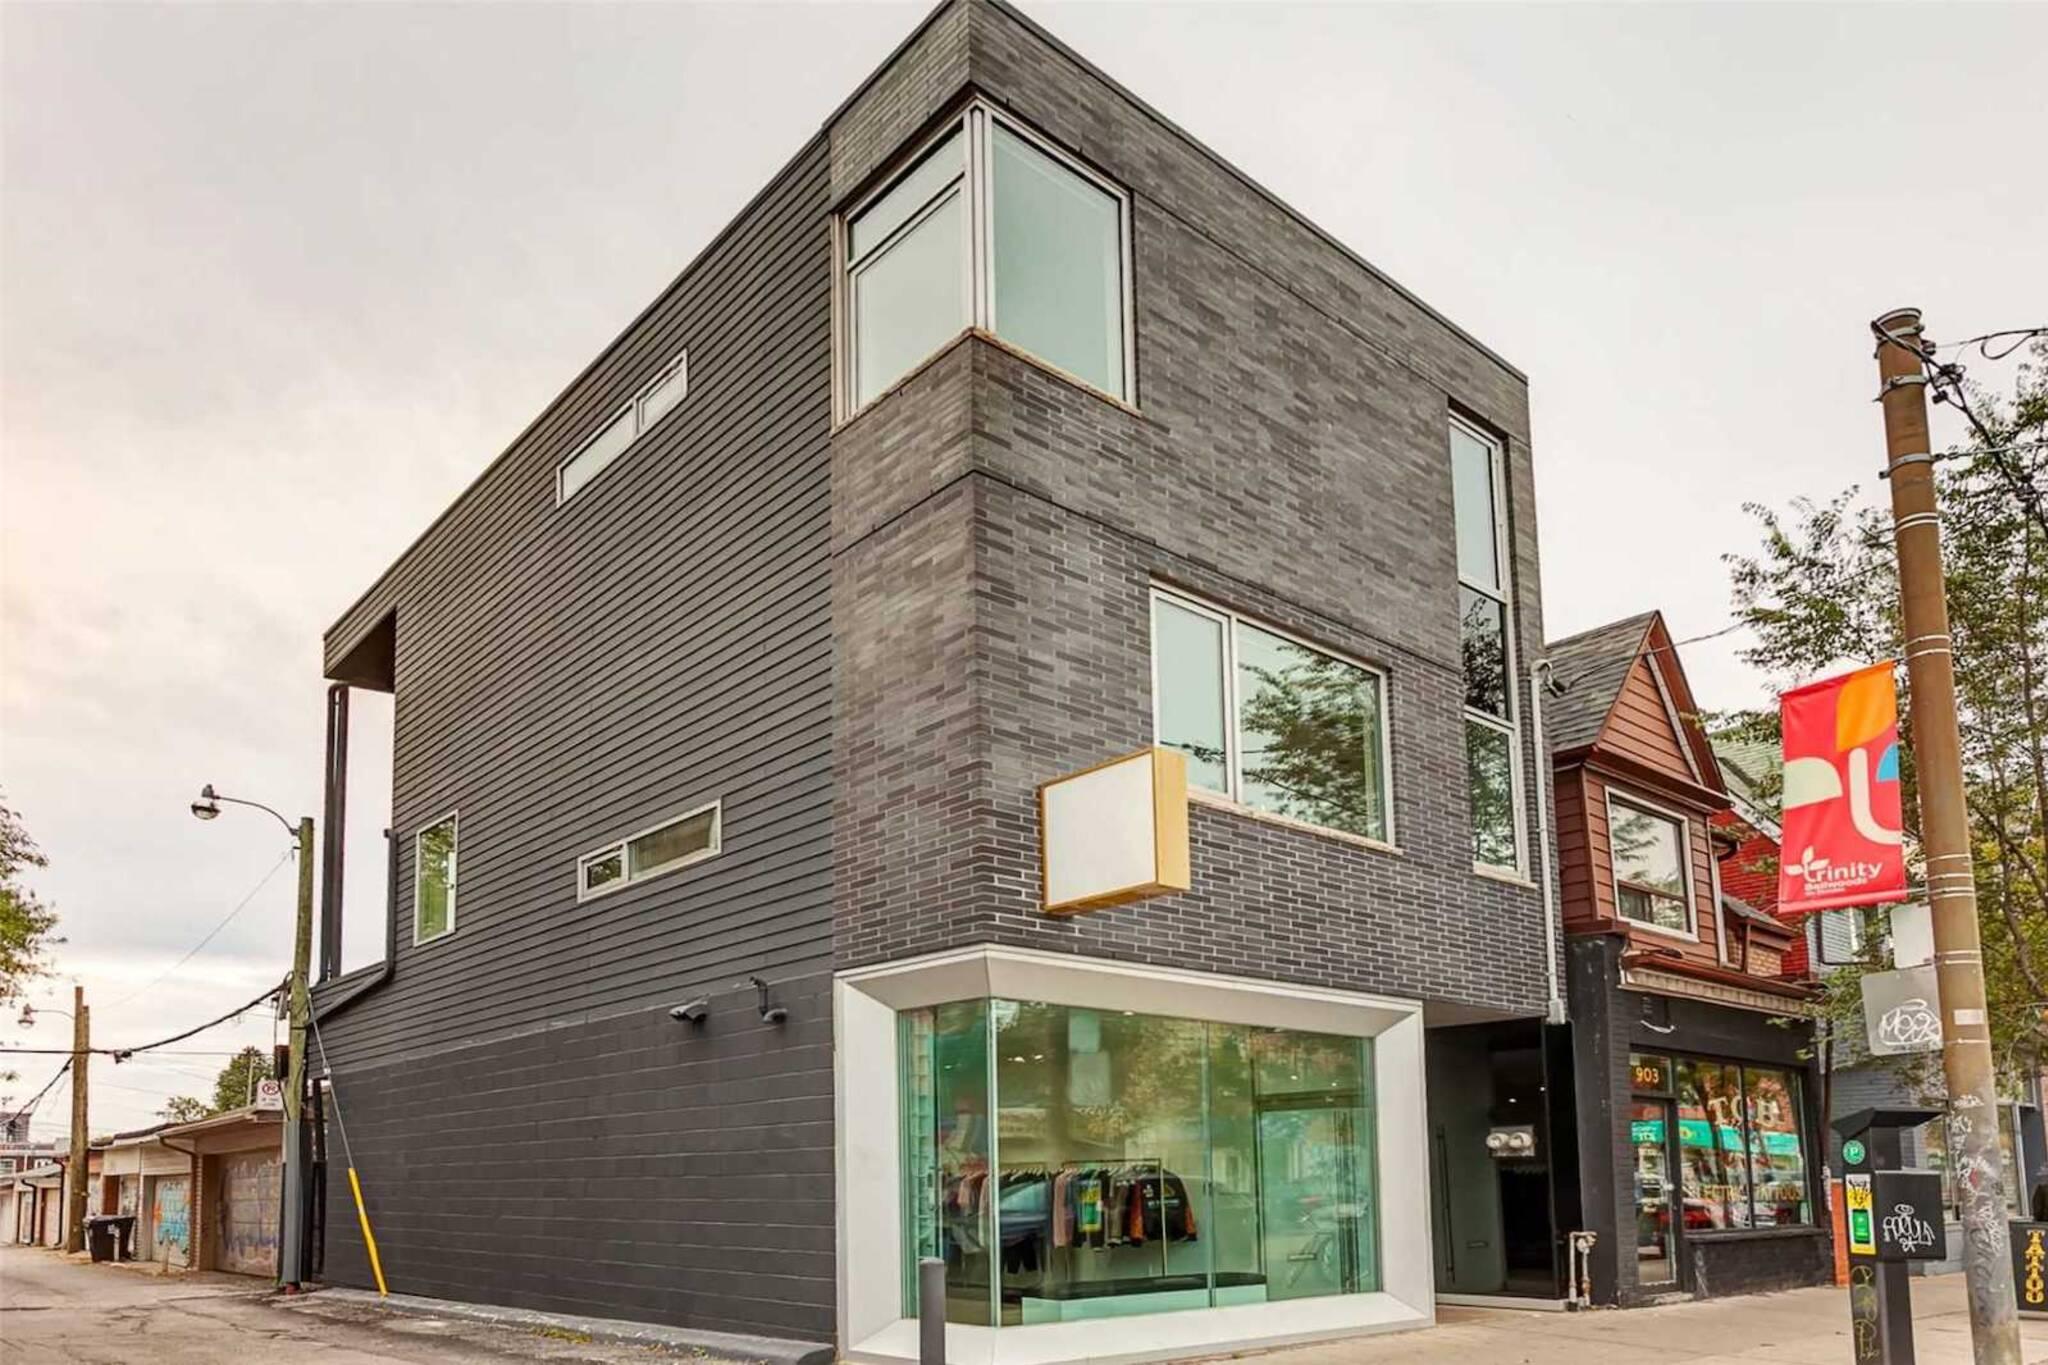 Sold Toronto House Above Drake S Ovo Store Goes For 2 95 Million